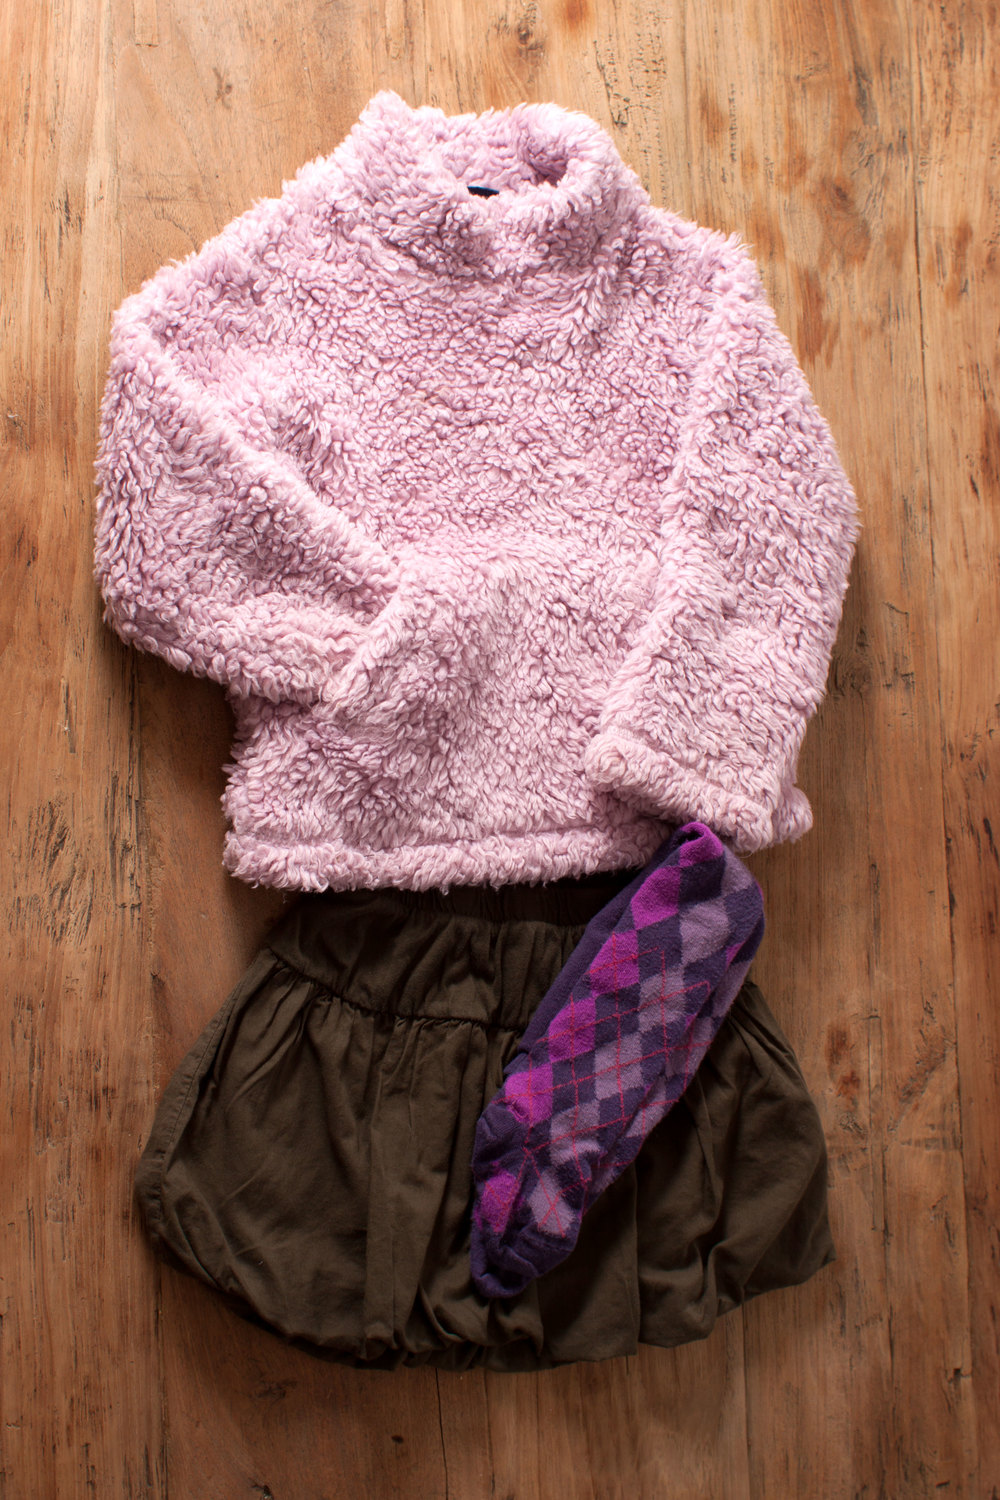 Image includes Mini Boden lavender sorbet fuzzy pullover. 3/4 years. $8.95.